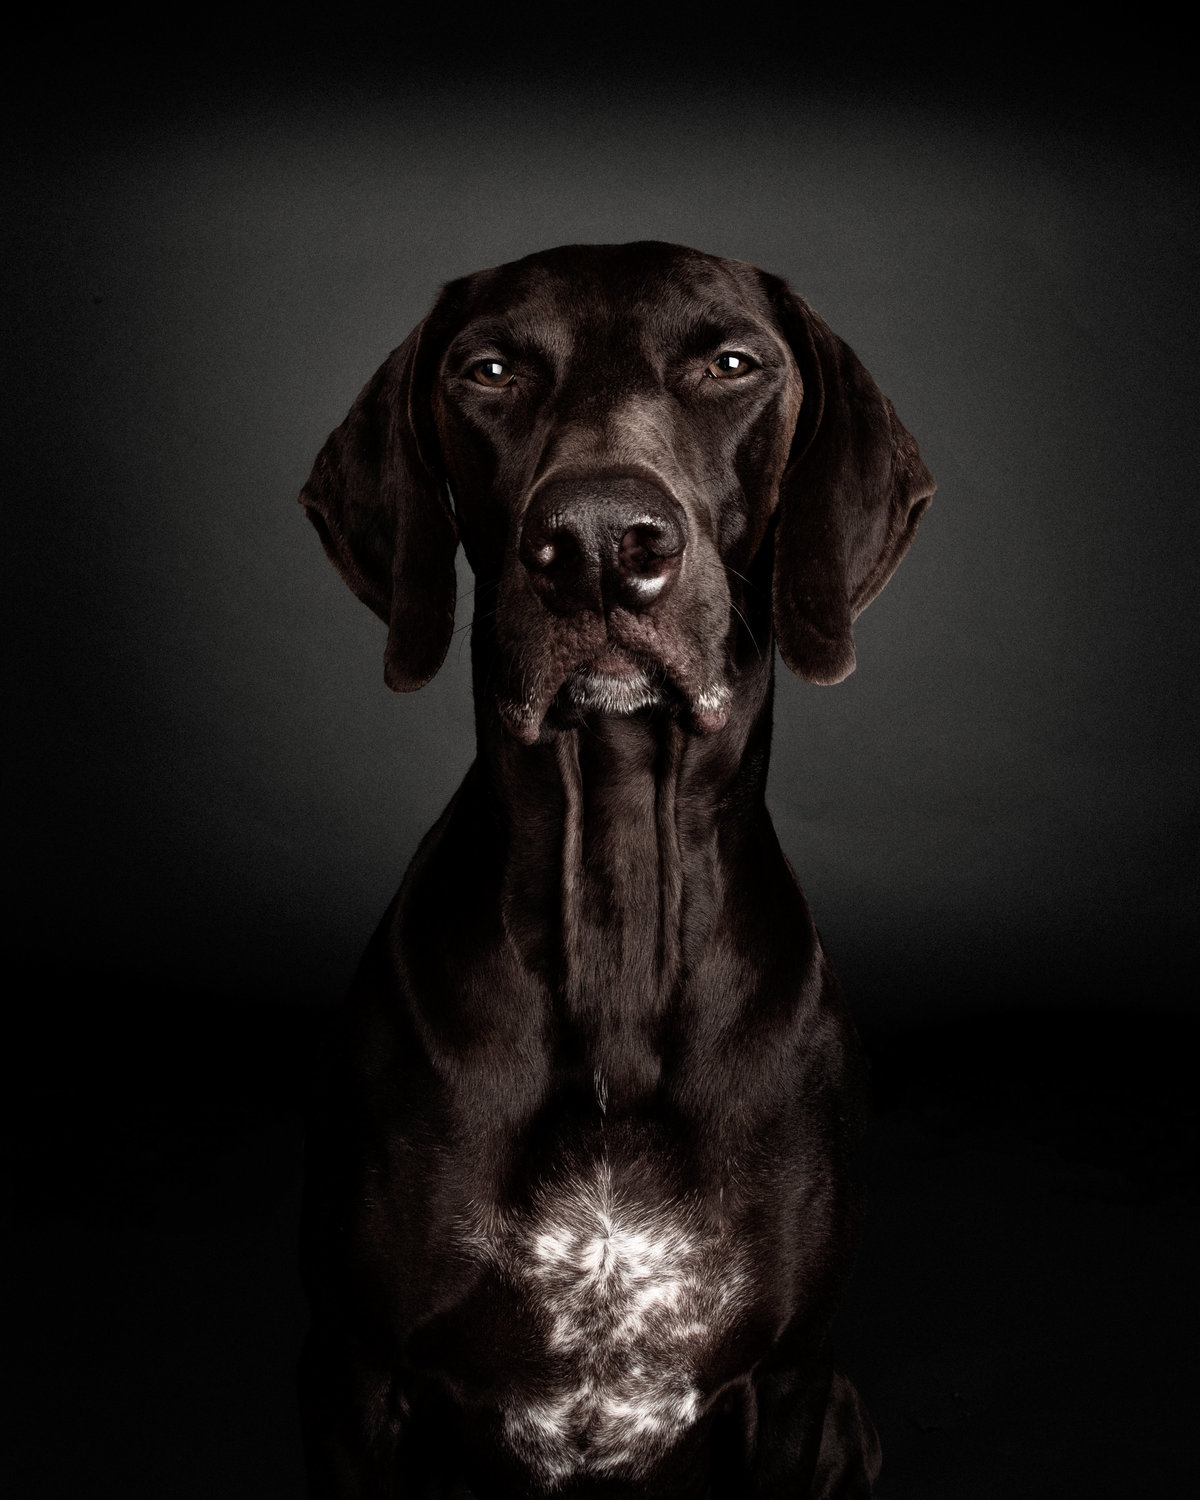 Big nose headshot of a very serious dog German Shorthaired Pointer on black background